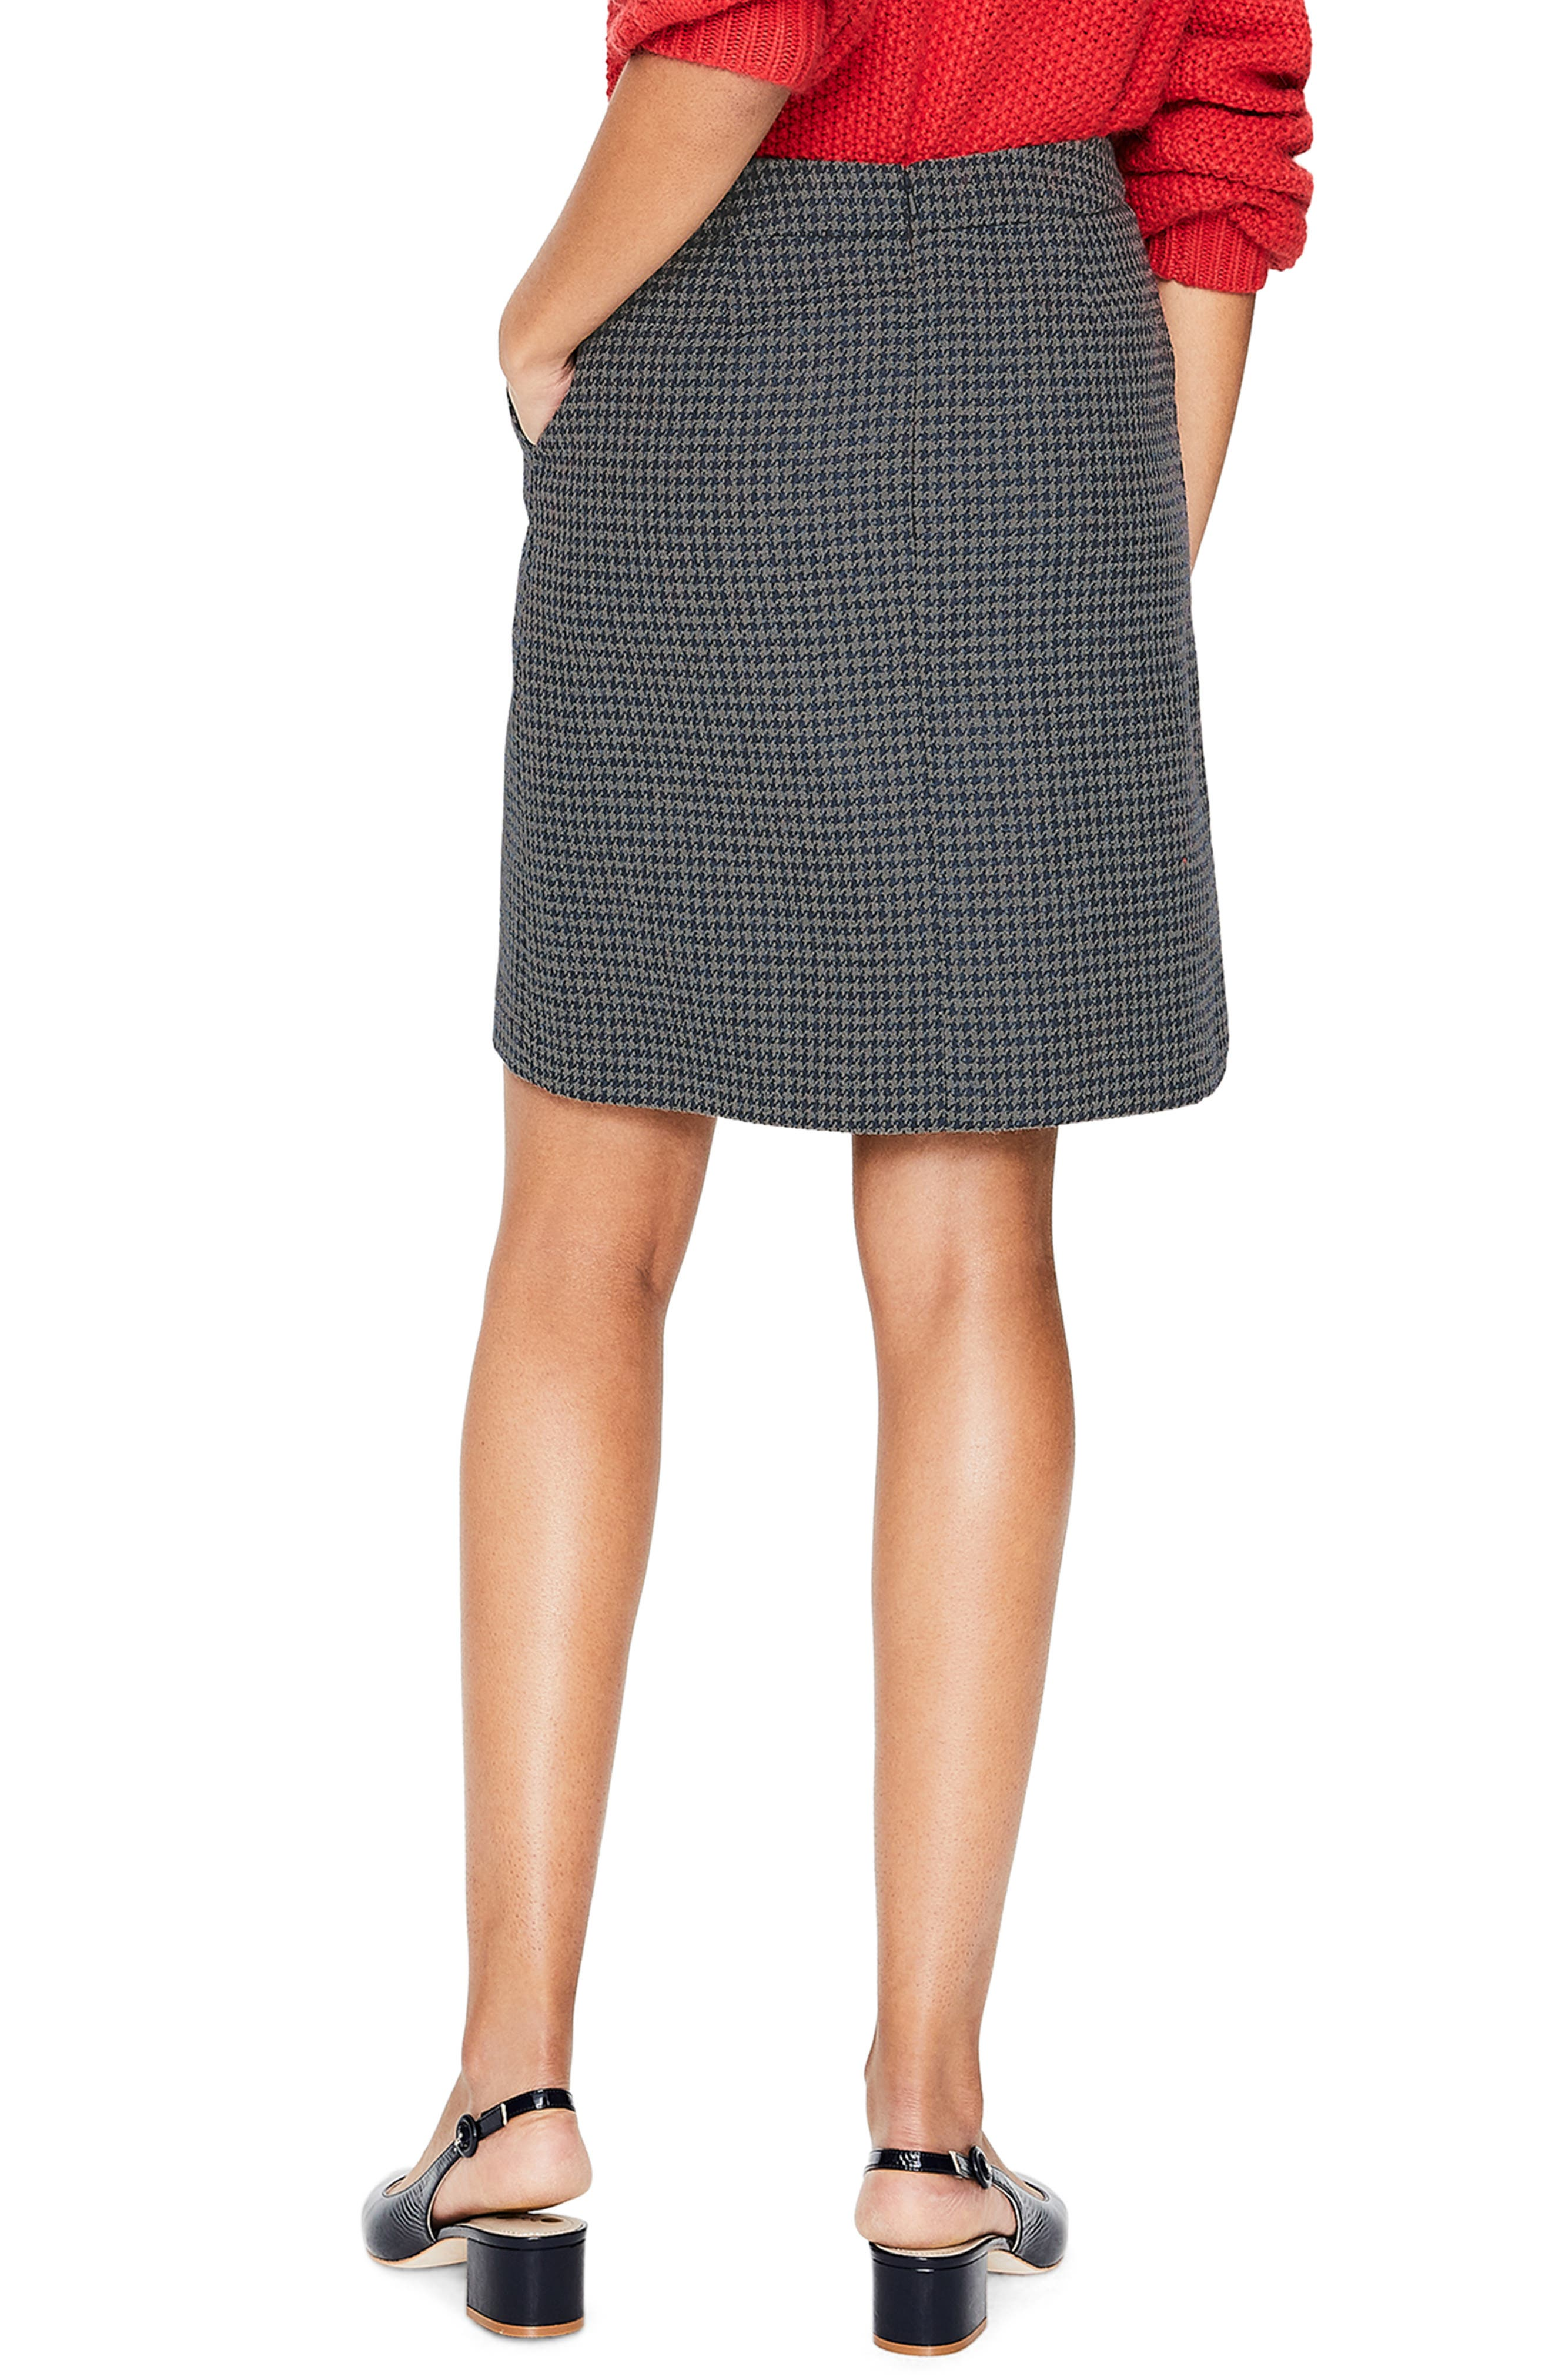 British Tweed Wool Mini Skirt,                             Alternate thumbnail 2, color,                             NAVY/ GREY MARL PUPPYTOOTH